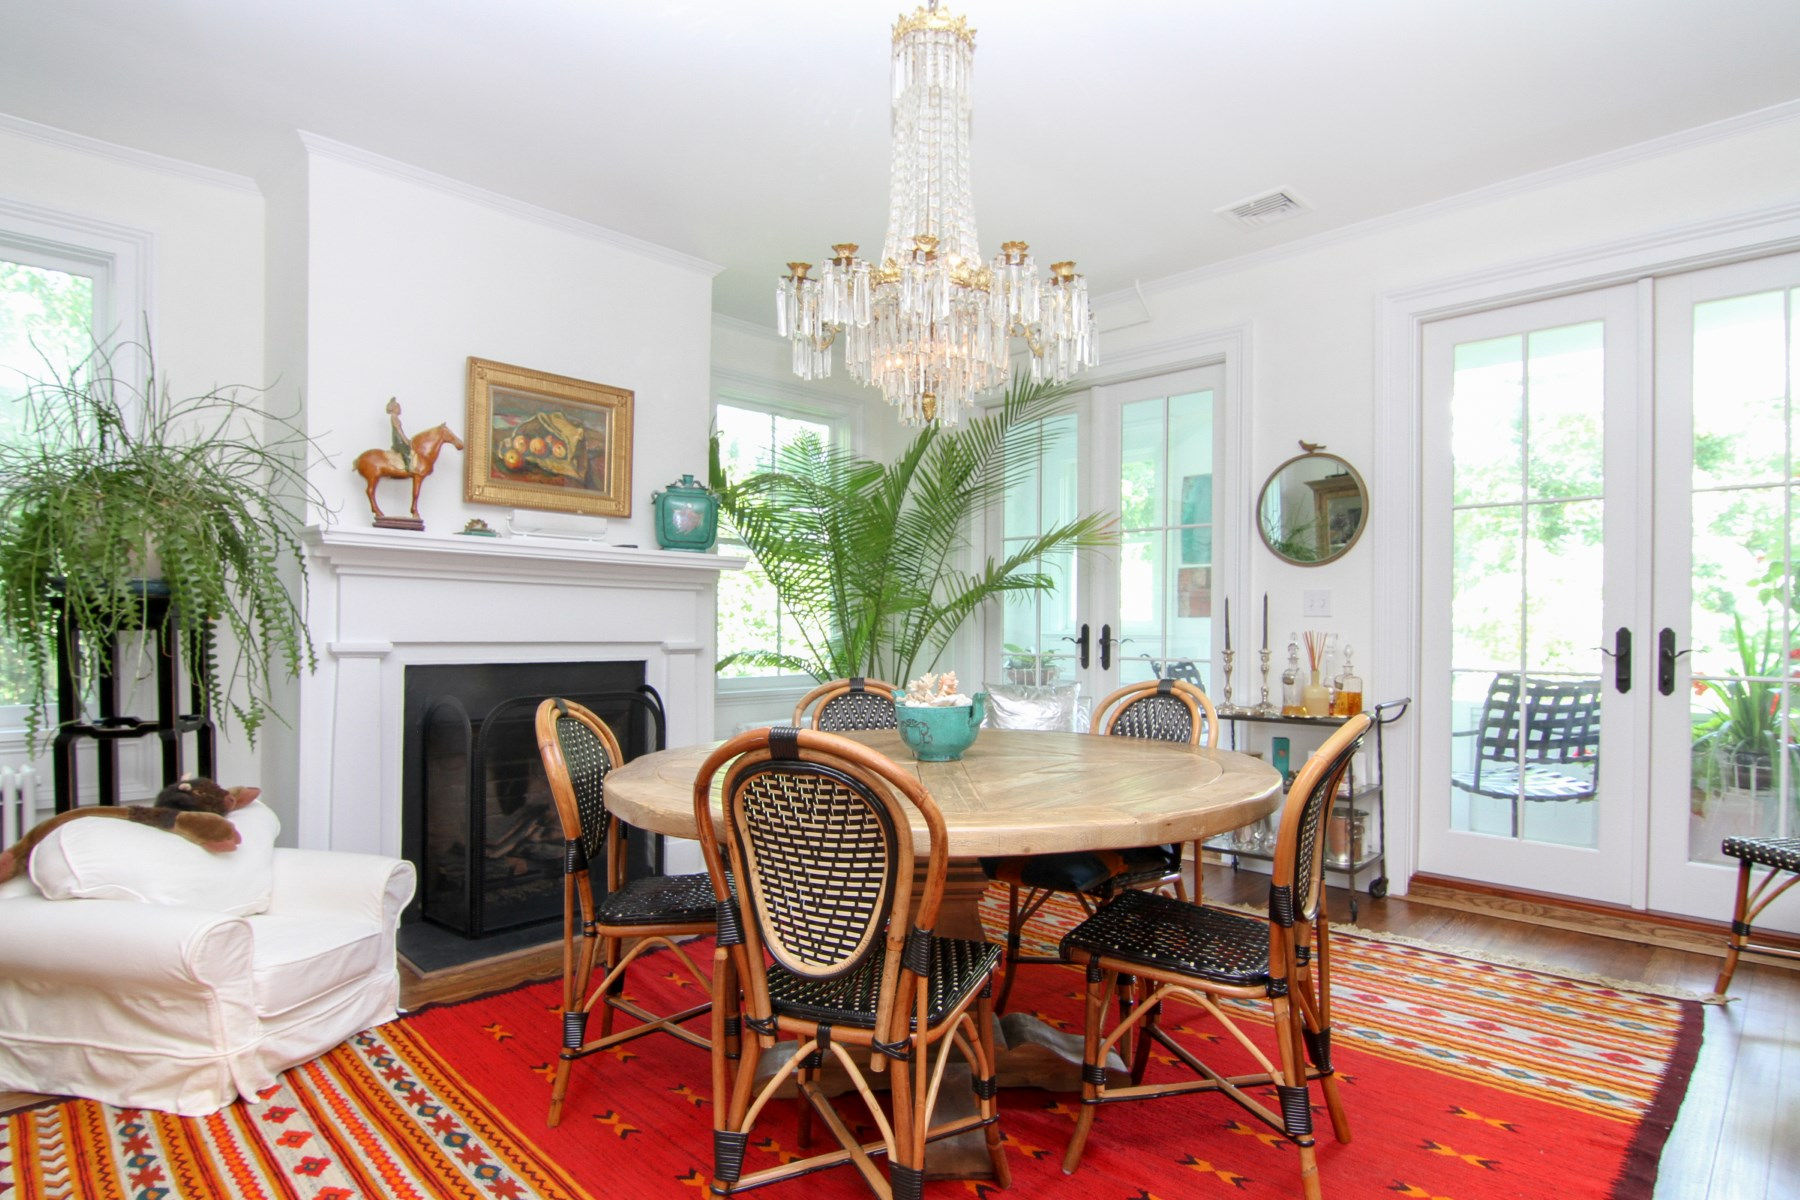 Single Family Home for Sale at Glorious High Street 24 High Street, Sag Harbor, New York, 11963 United States